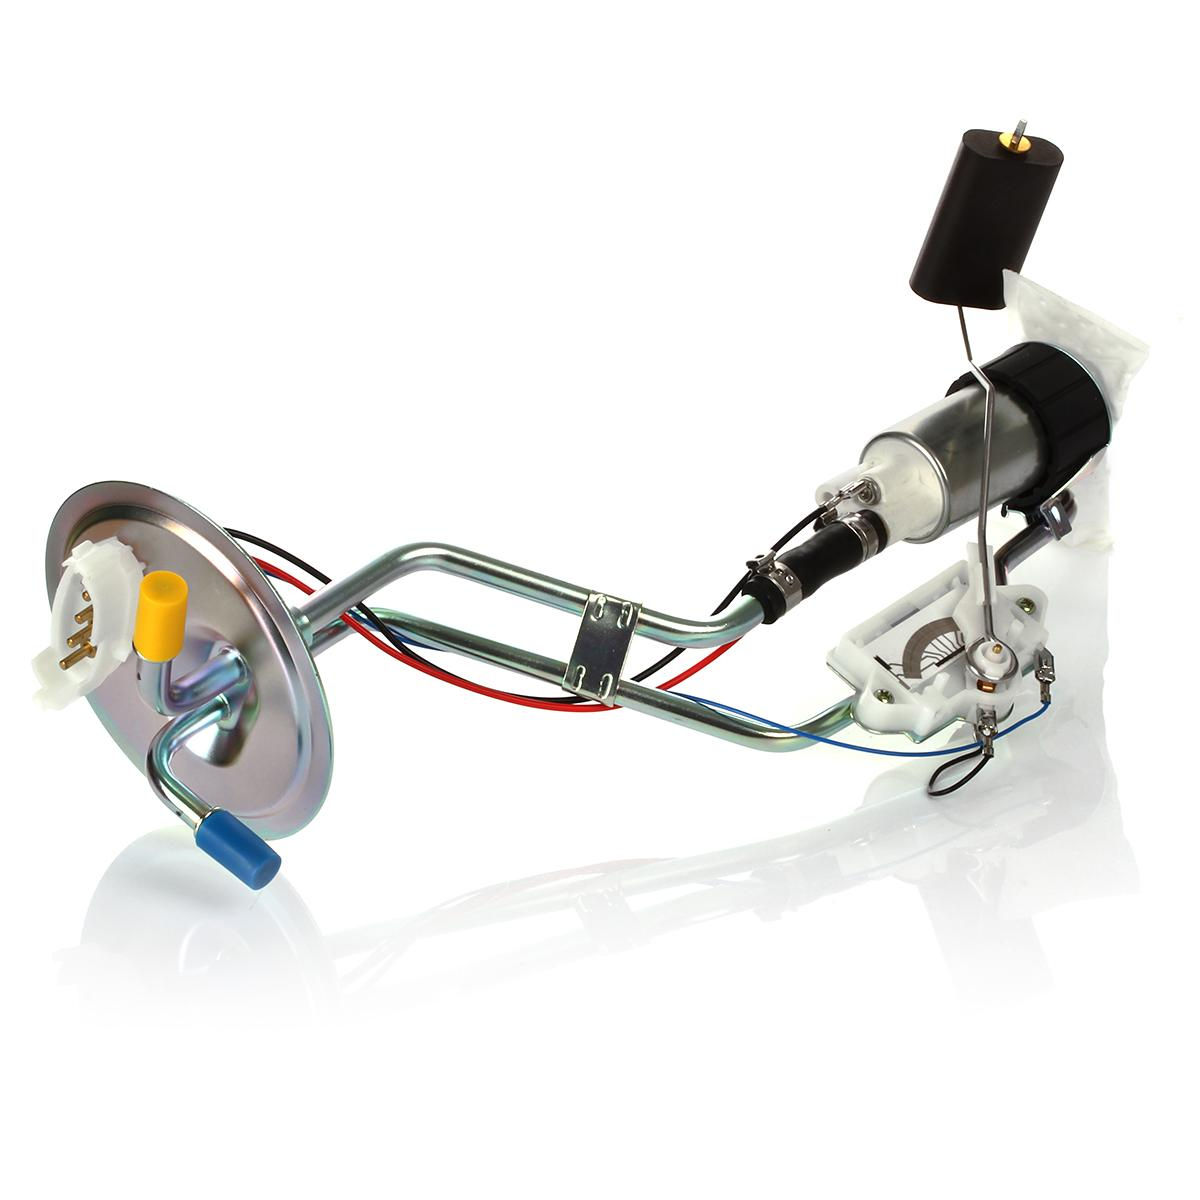 F1TZ9H307D Fuel Pump Module W/Leve Sensor For Ford Ranger